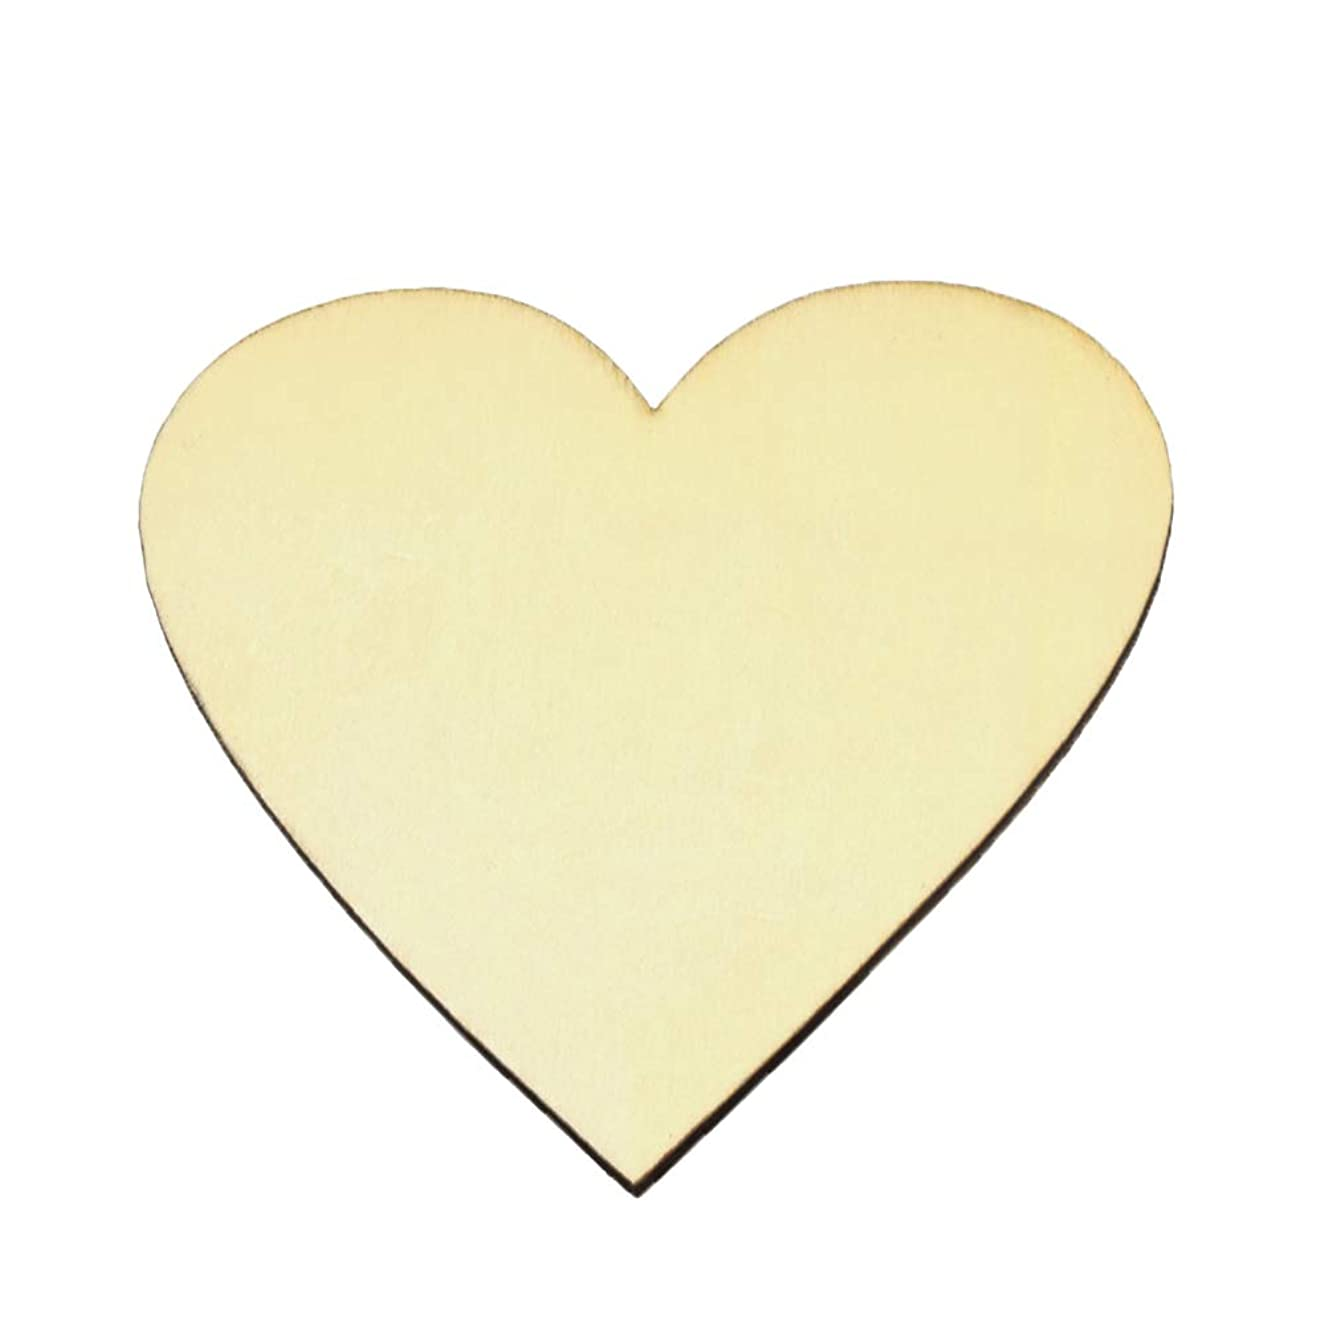 Unfinished Wood Cutout Heart-Shaped Wood Pieces for Wooden Craft DIY Projects, Signs, Wedding Decoration (10)